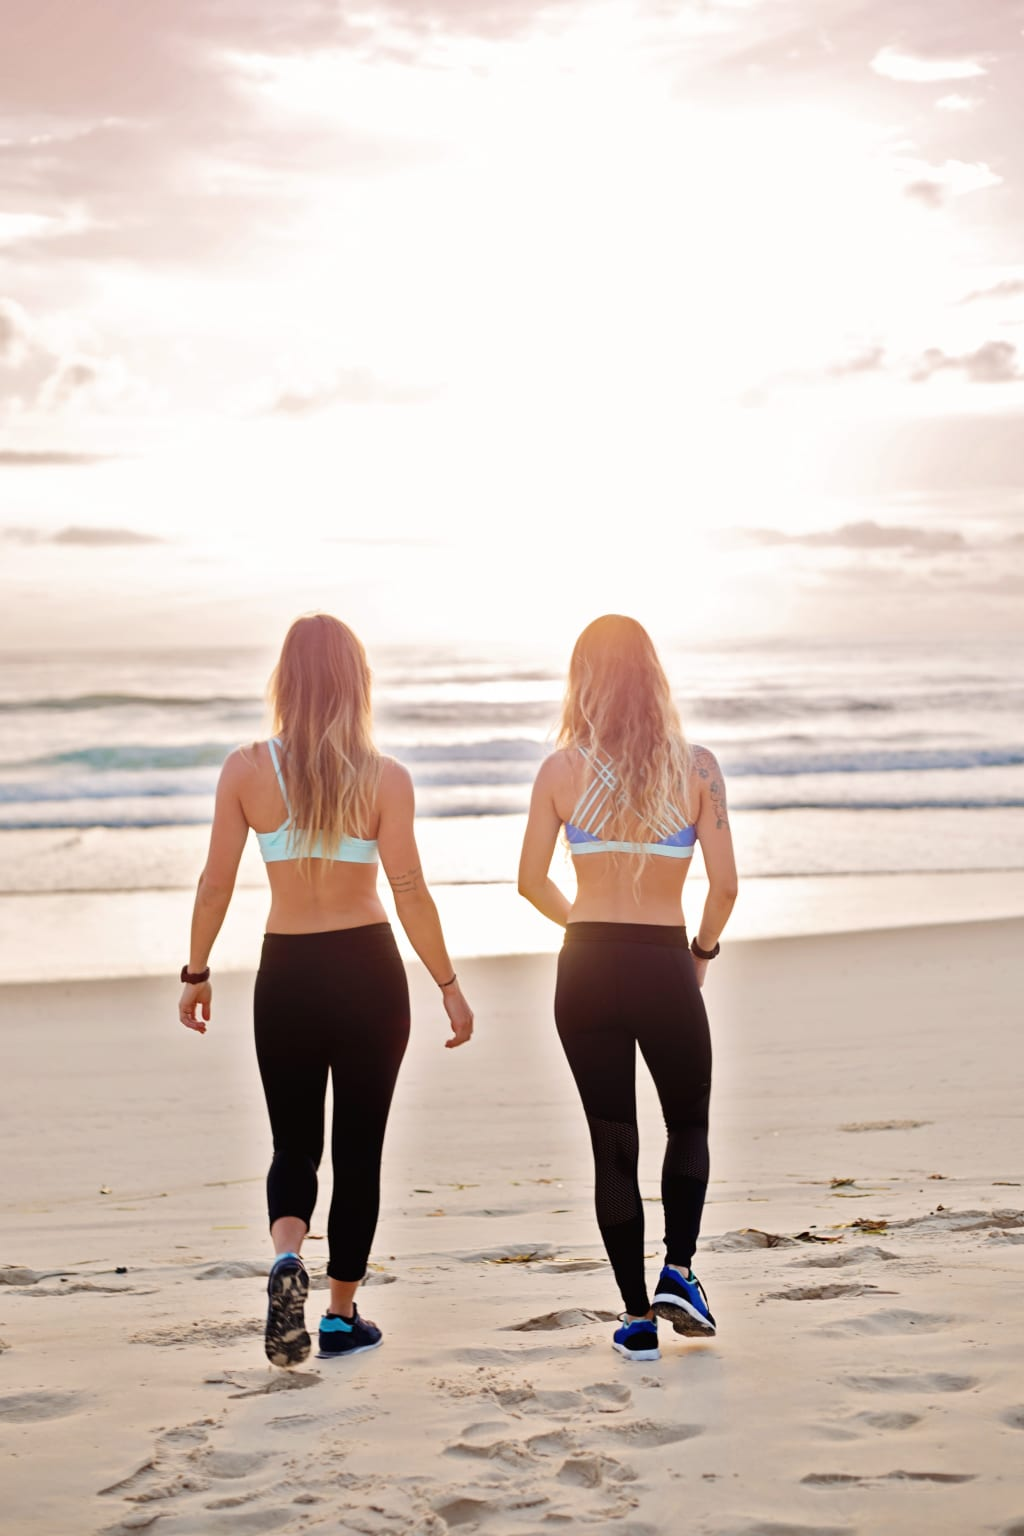 Walking Your Way to a Healthier You